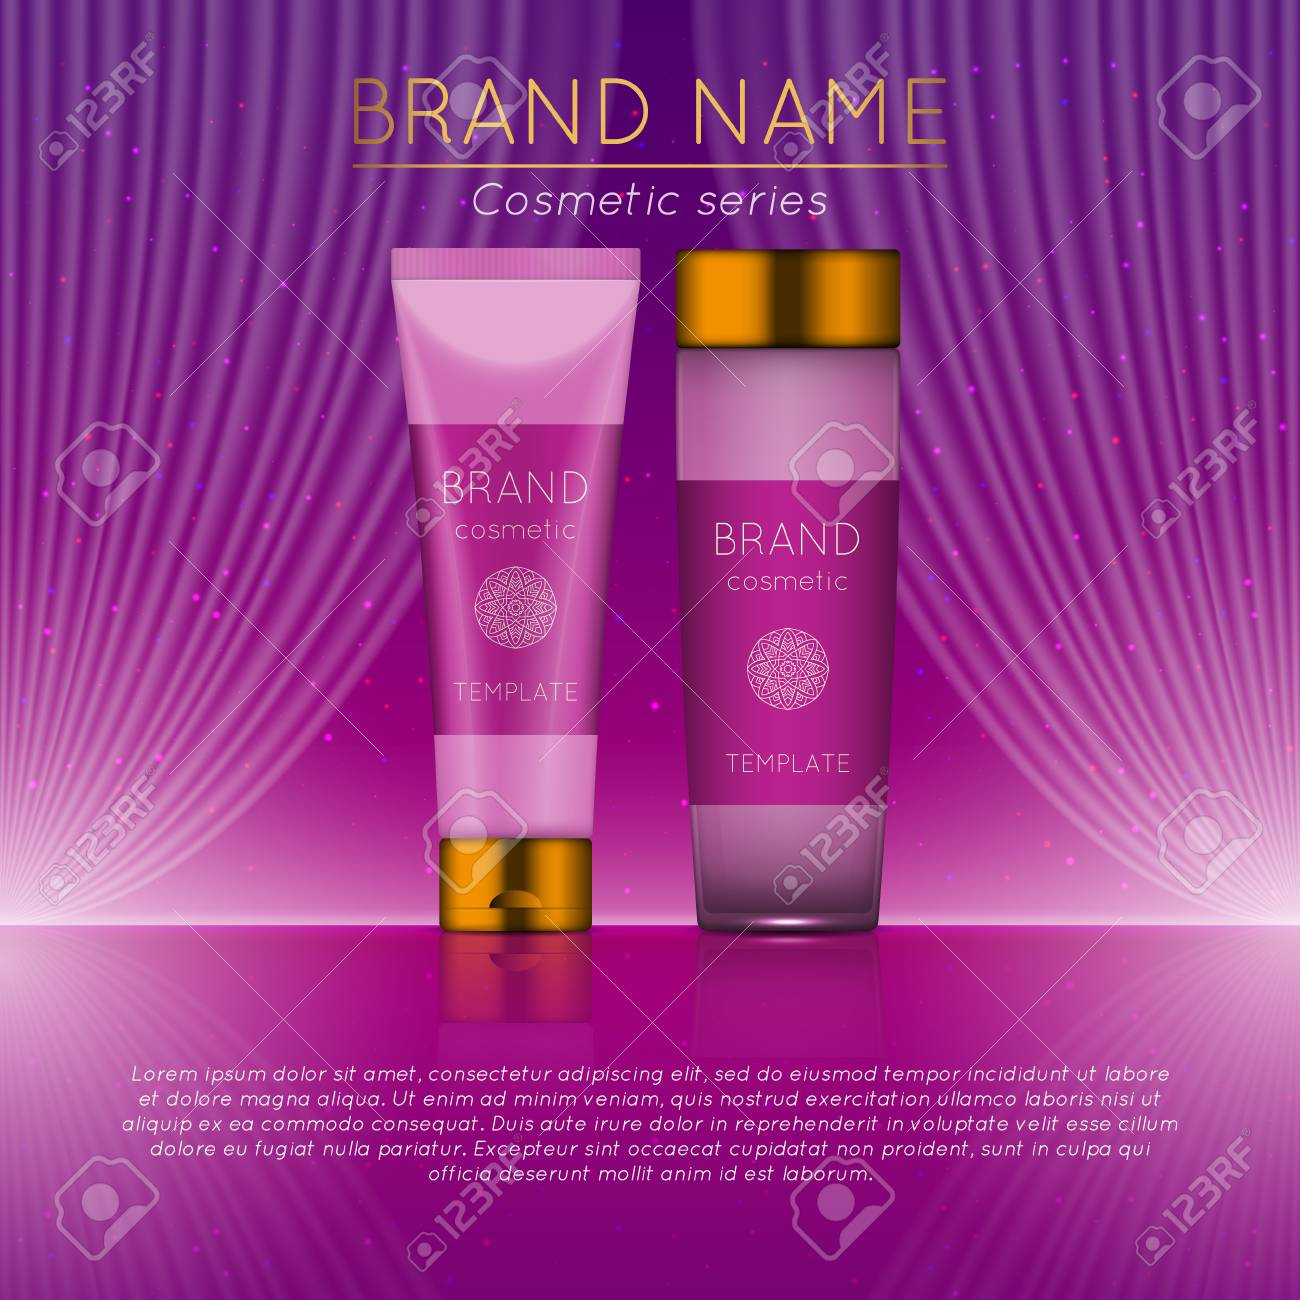 D Beauty Product Ad Template Design Royalty Free Cliparts Vectors - Product ad template